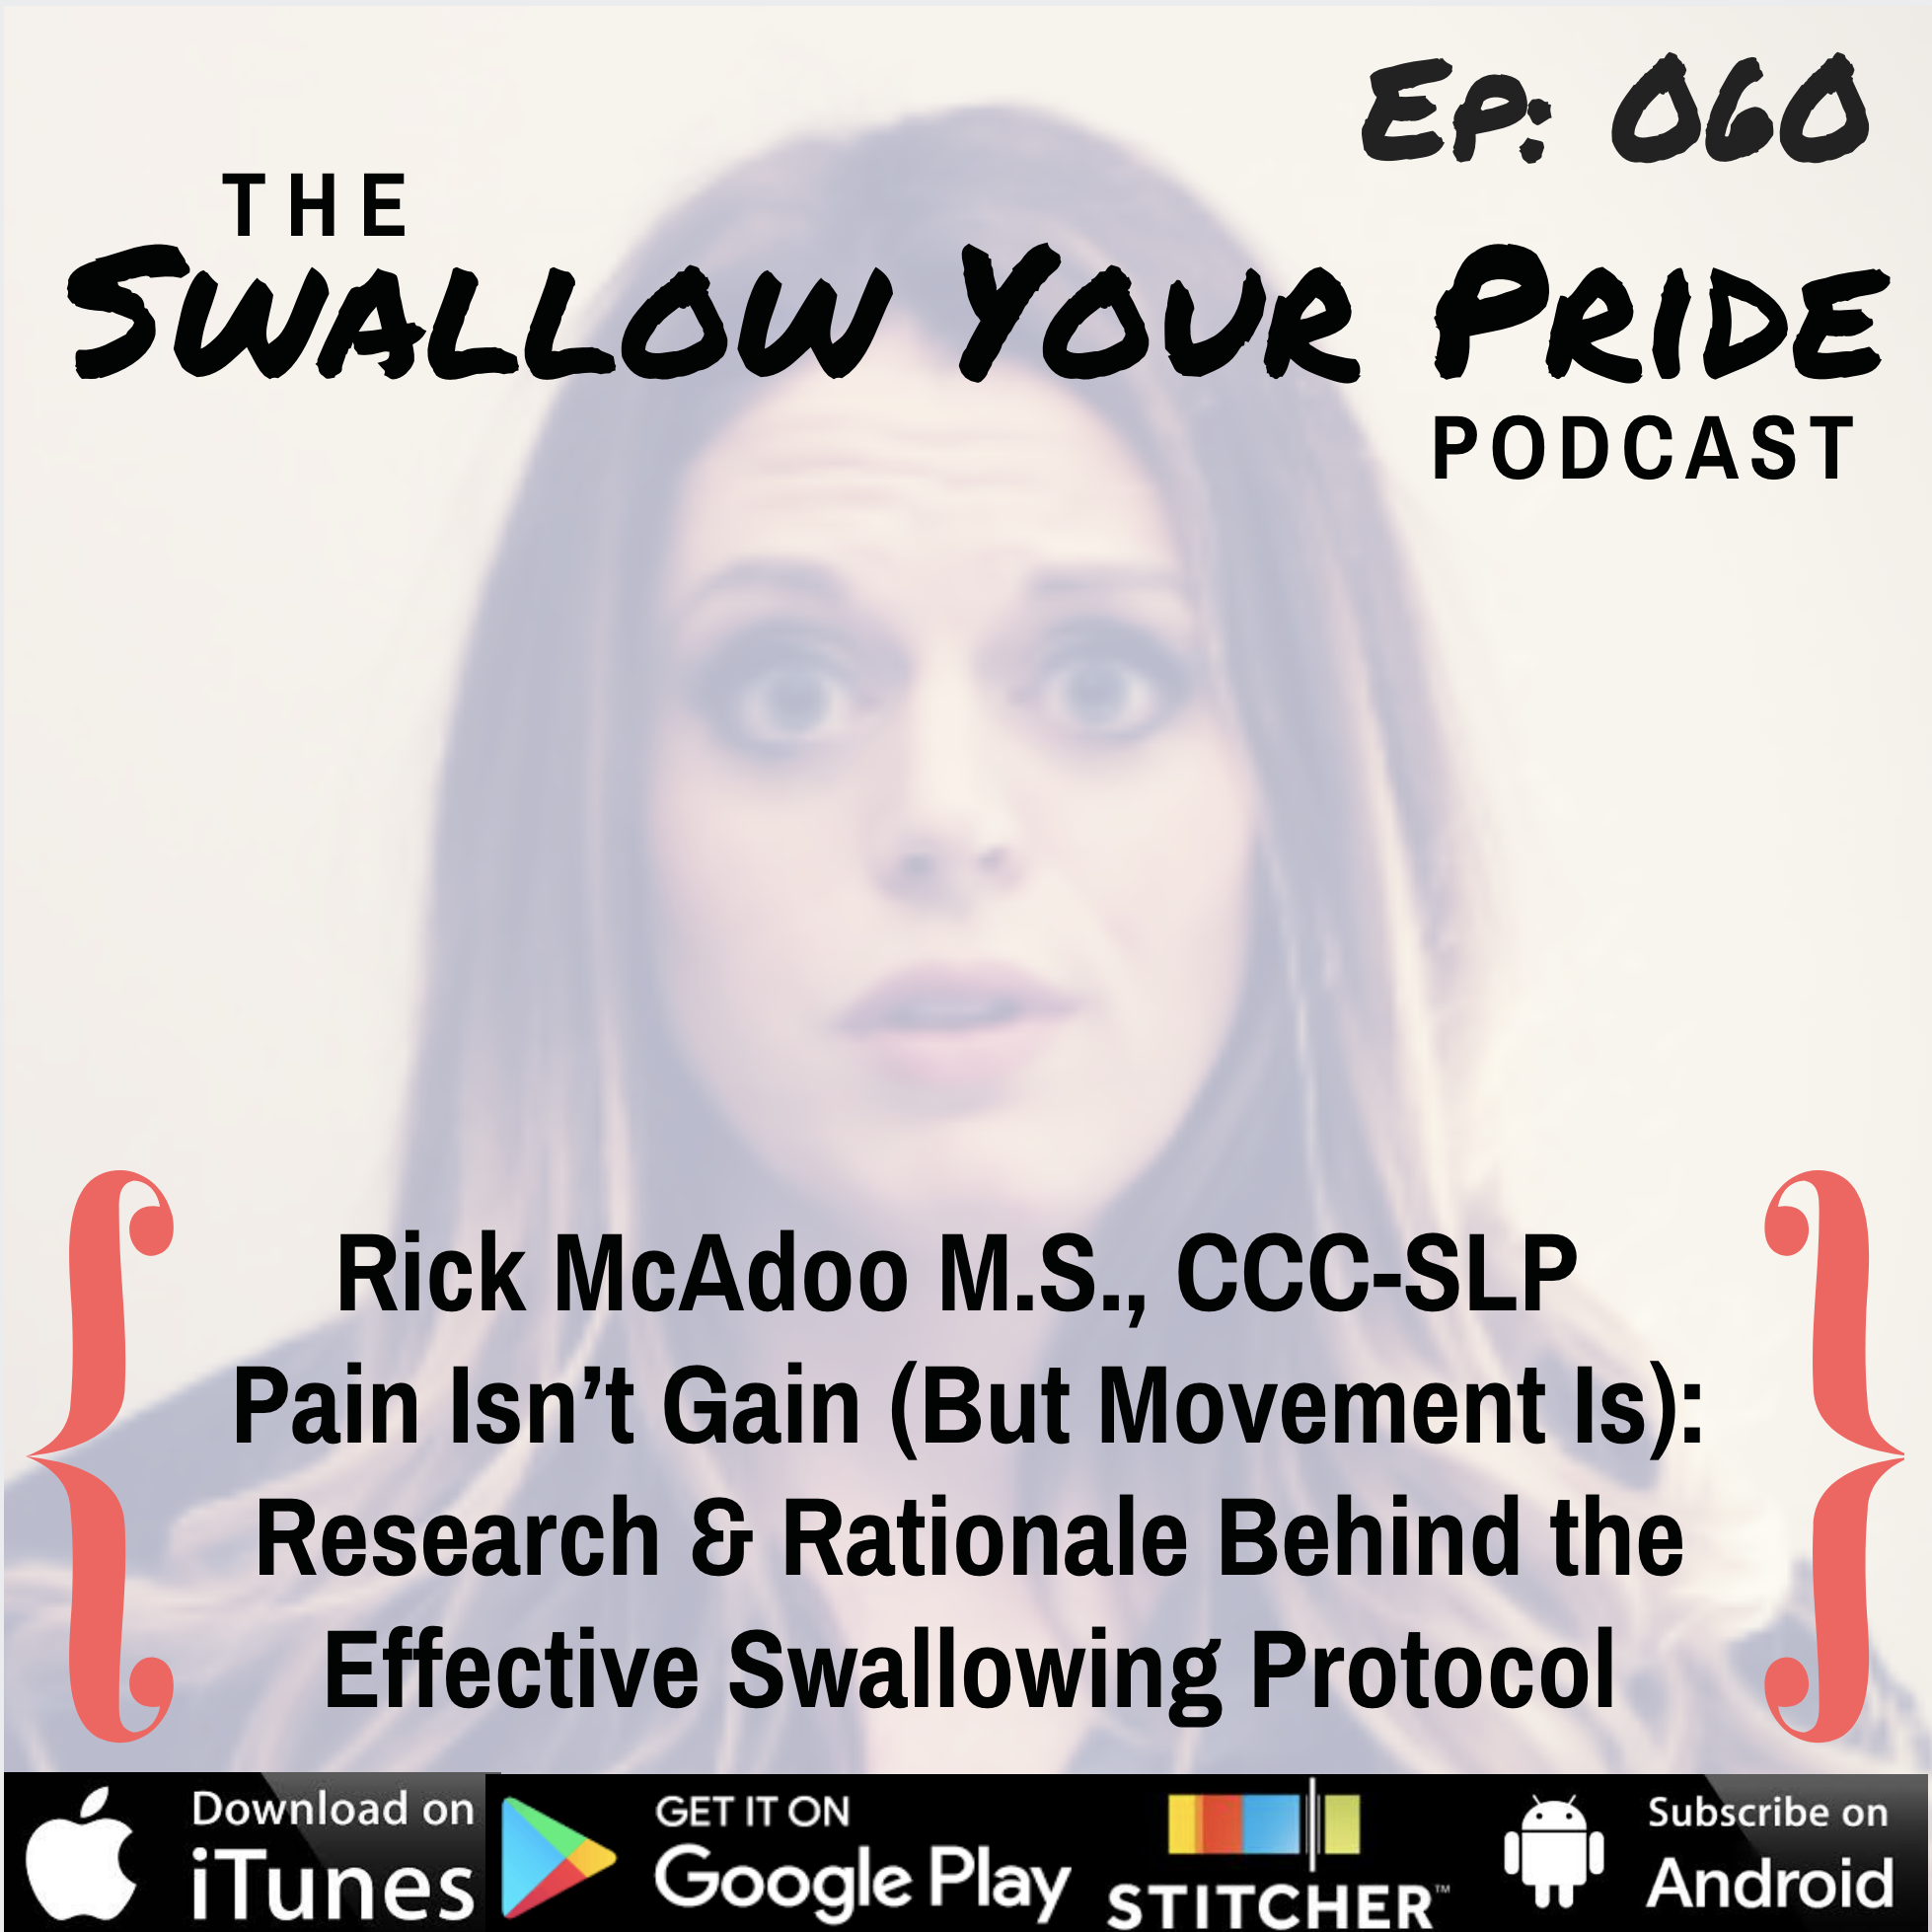 060 – Rick McAdoo M.S., CCC-SLP – Pain Isn't Gain (But Movement Is): Research and Rationale Behind the Effective Swallowing Protocol